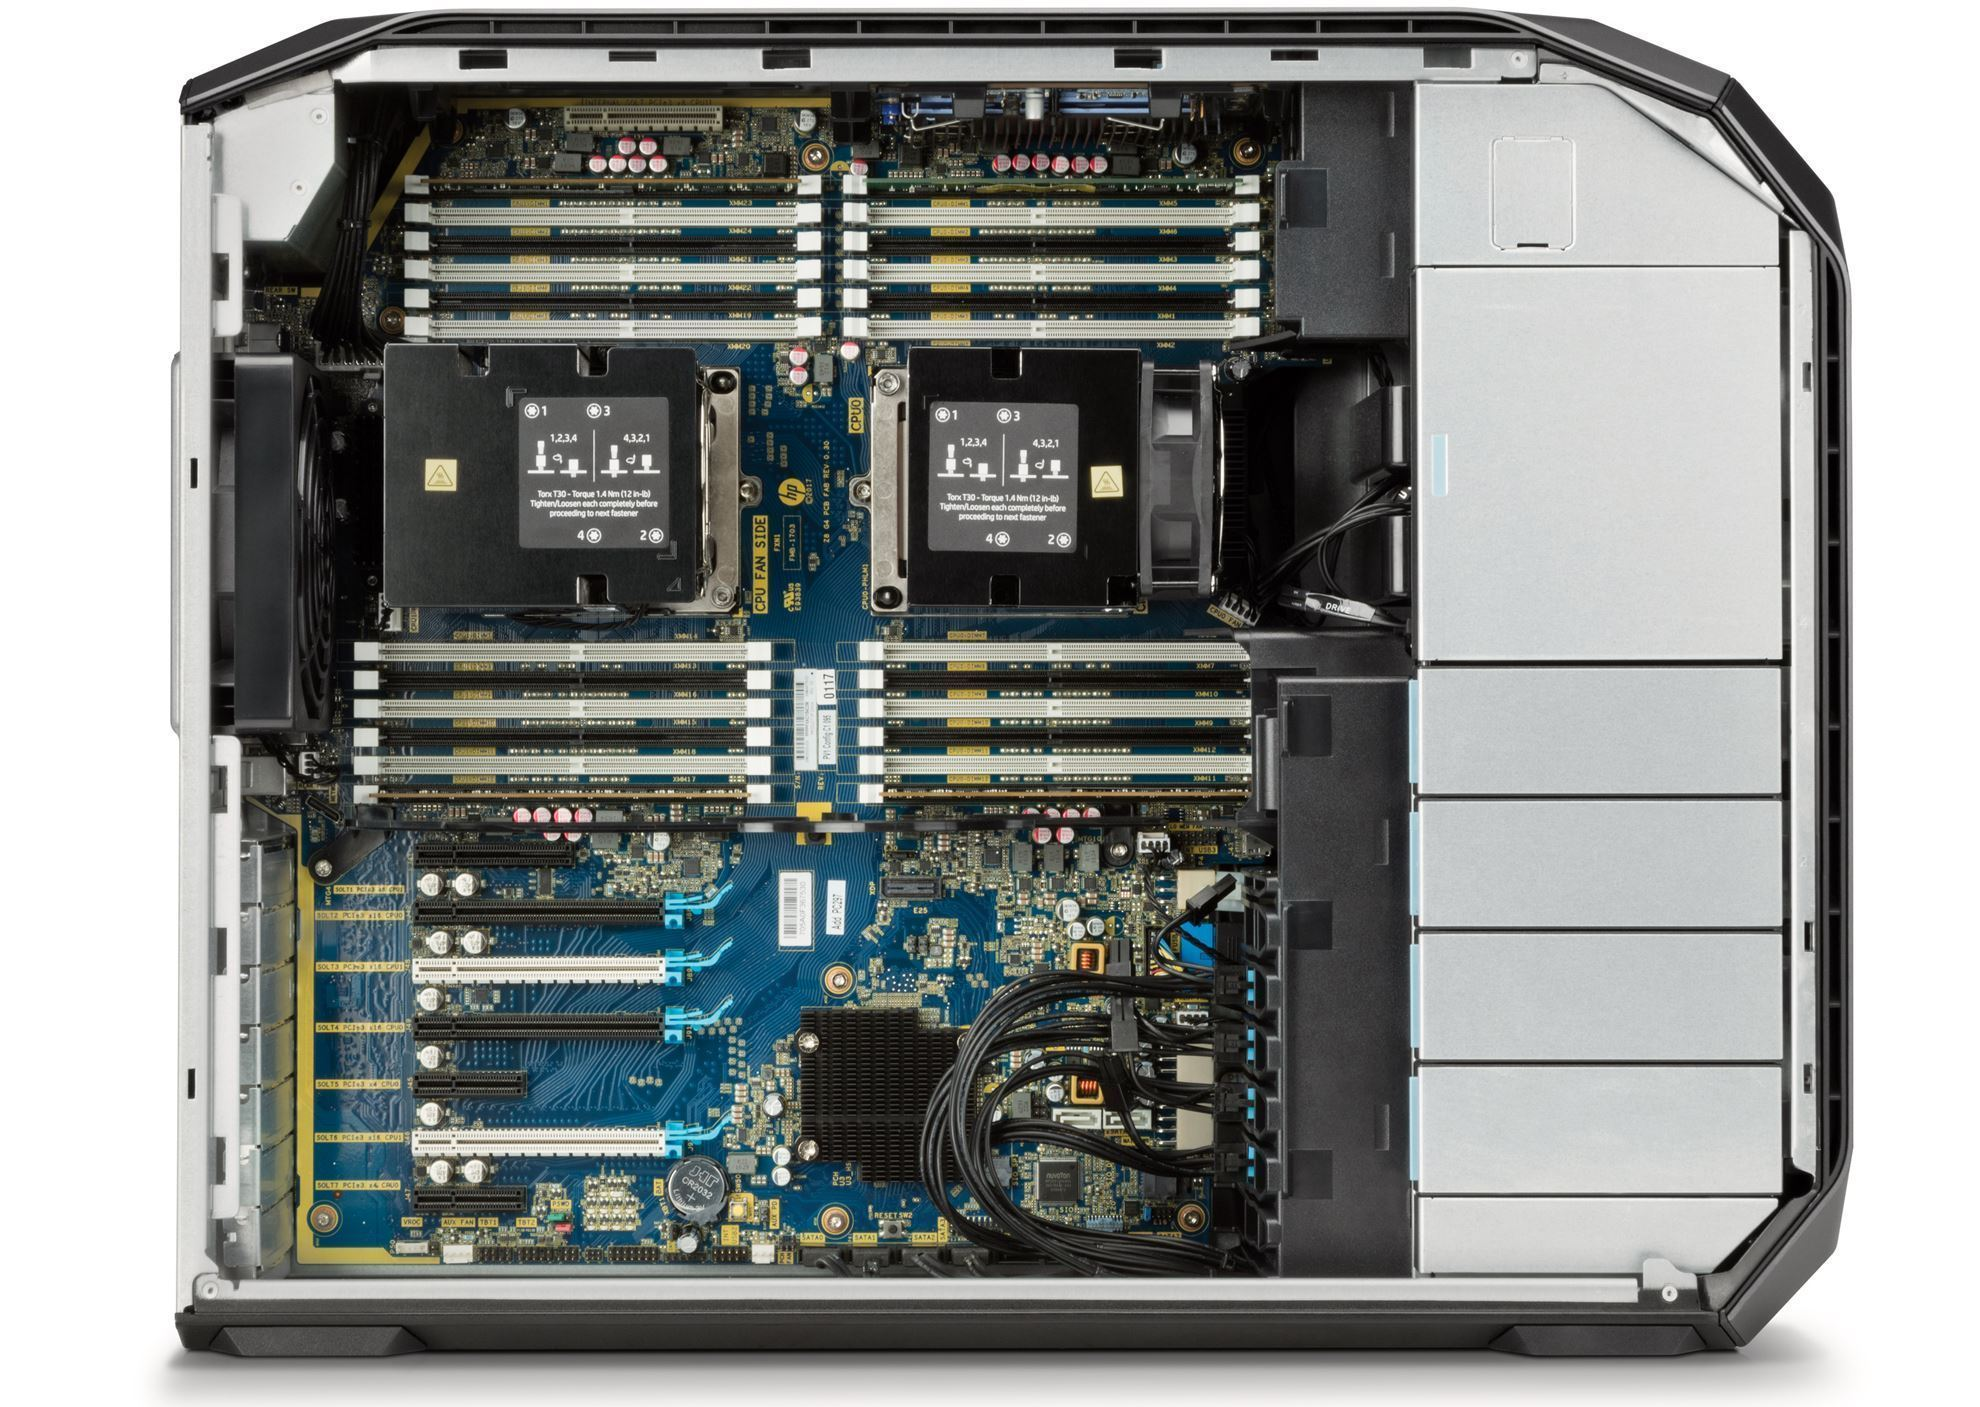 Picture of HP Z8 G4 Workstation Platinum 8260M